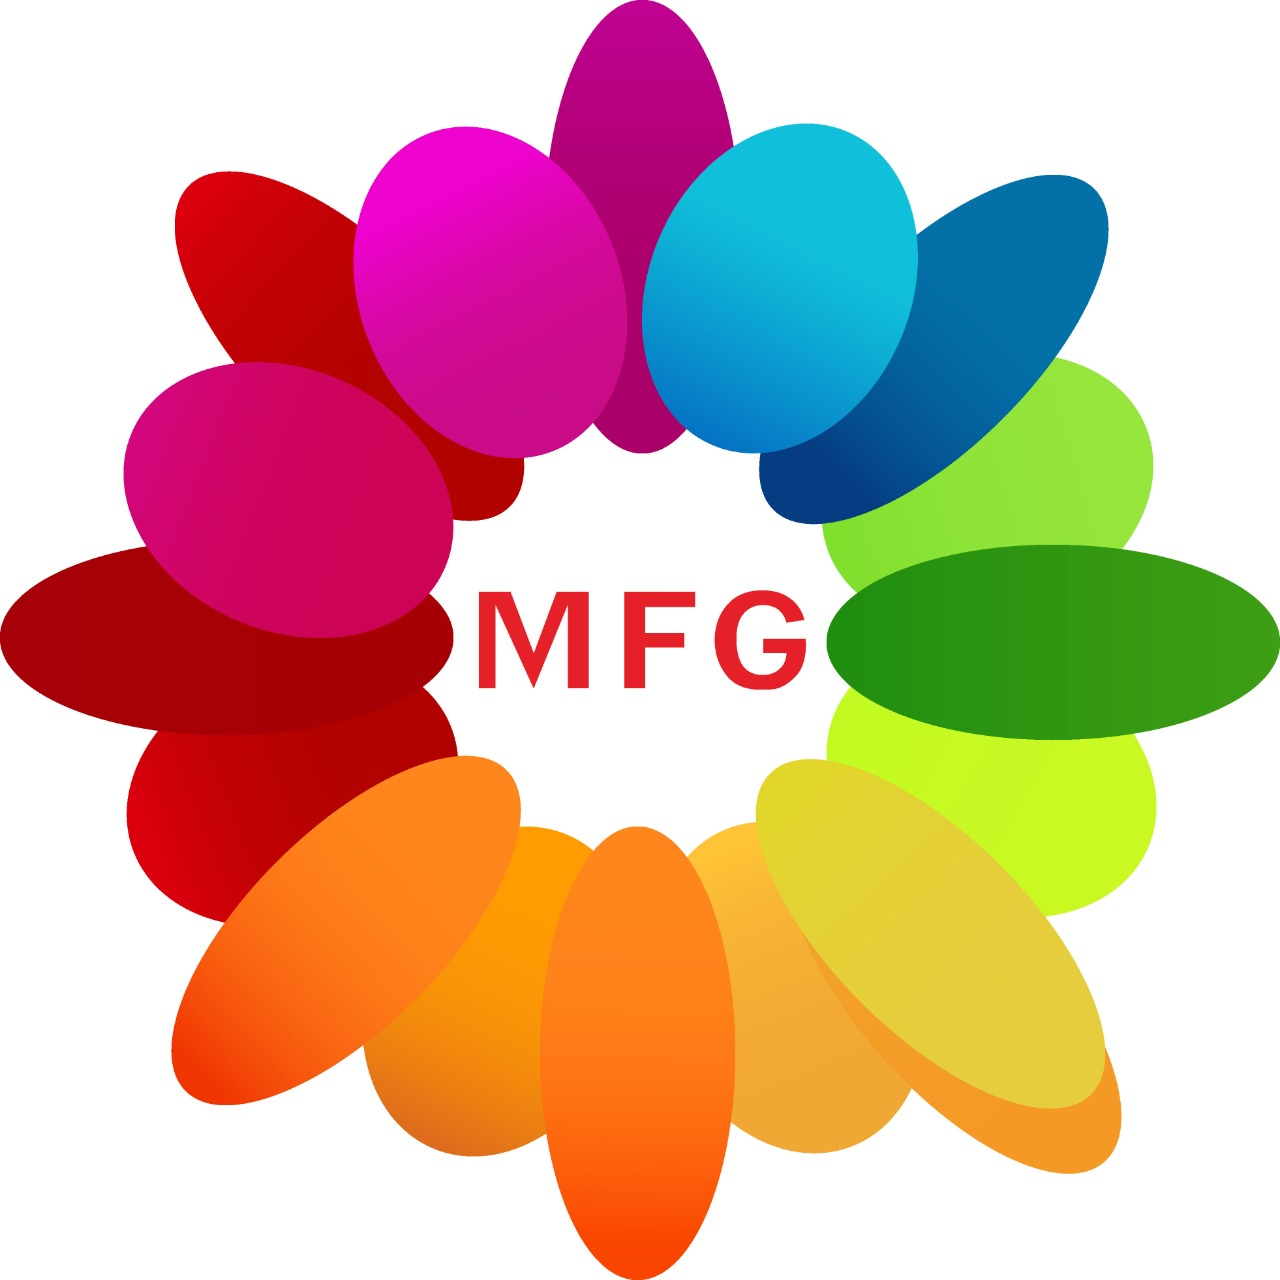 Bunch of 5 pink asiatic lilies with 1 pound pineapple fresh cream cake with 3 heart shape balloons